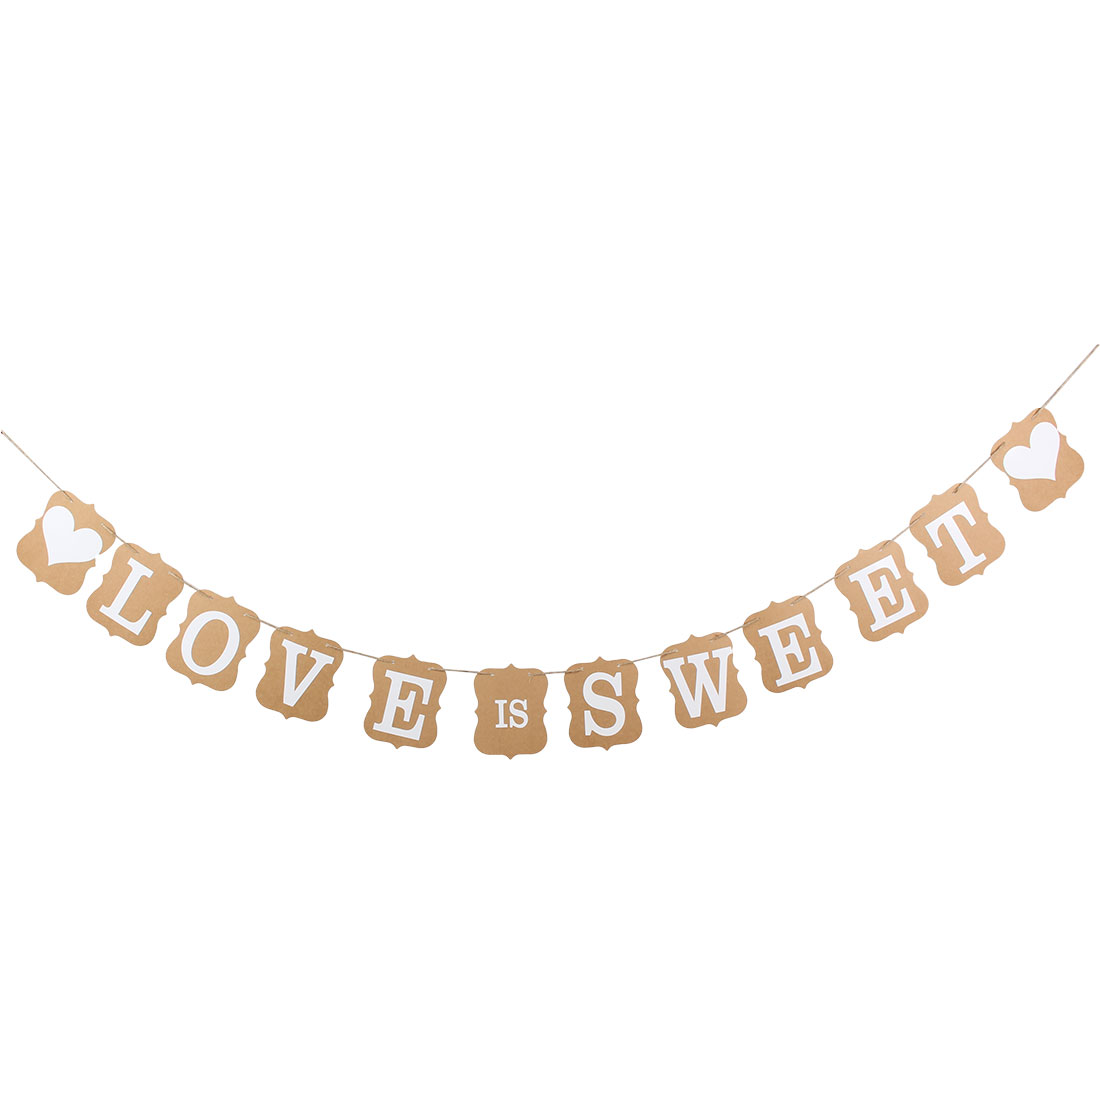 LOVE IS SWEET Wedding Engagement Banner Bunting Vintage Venue Decoration Photo Prop Khaki